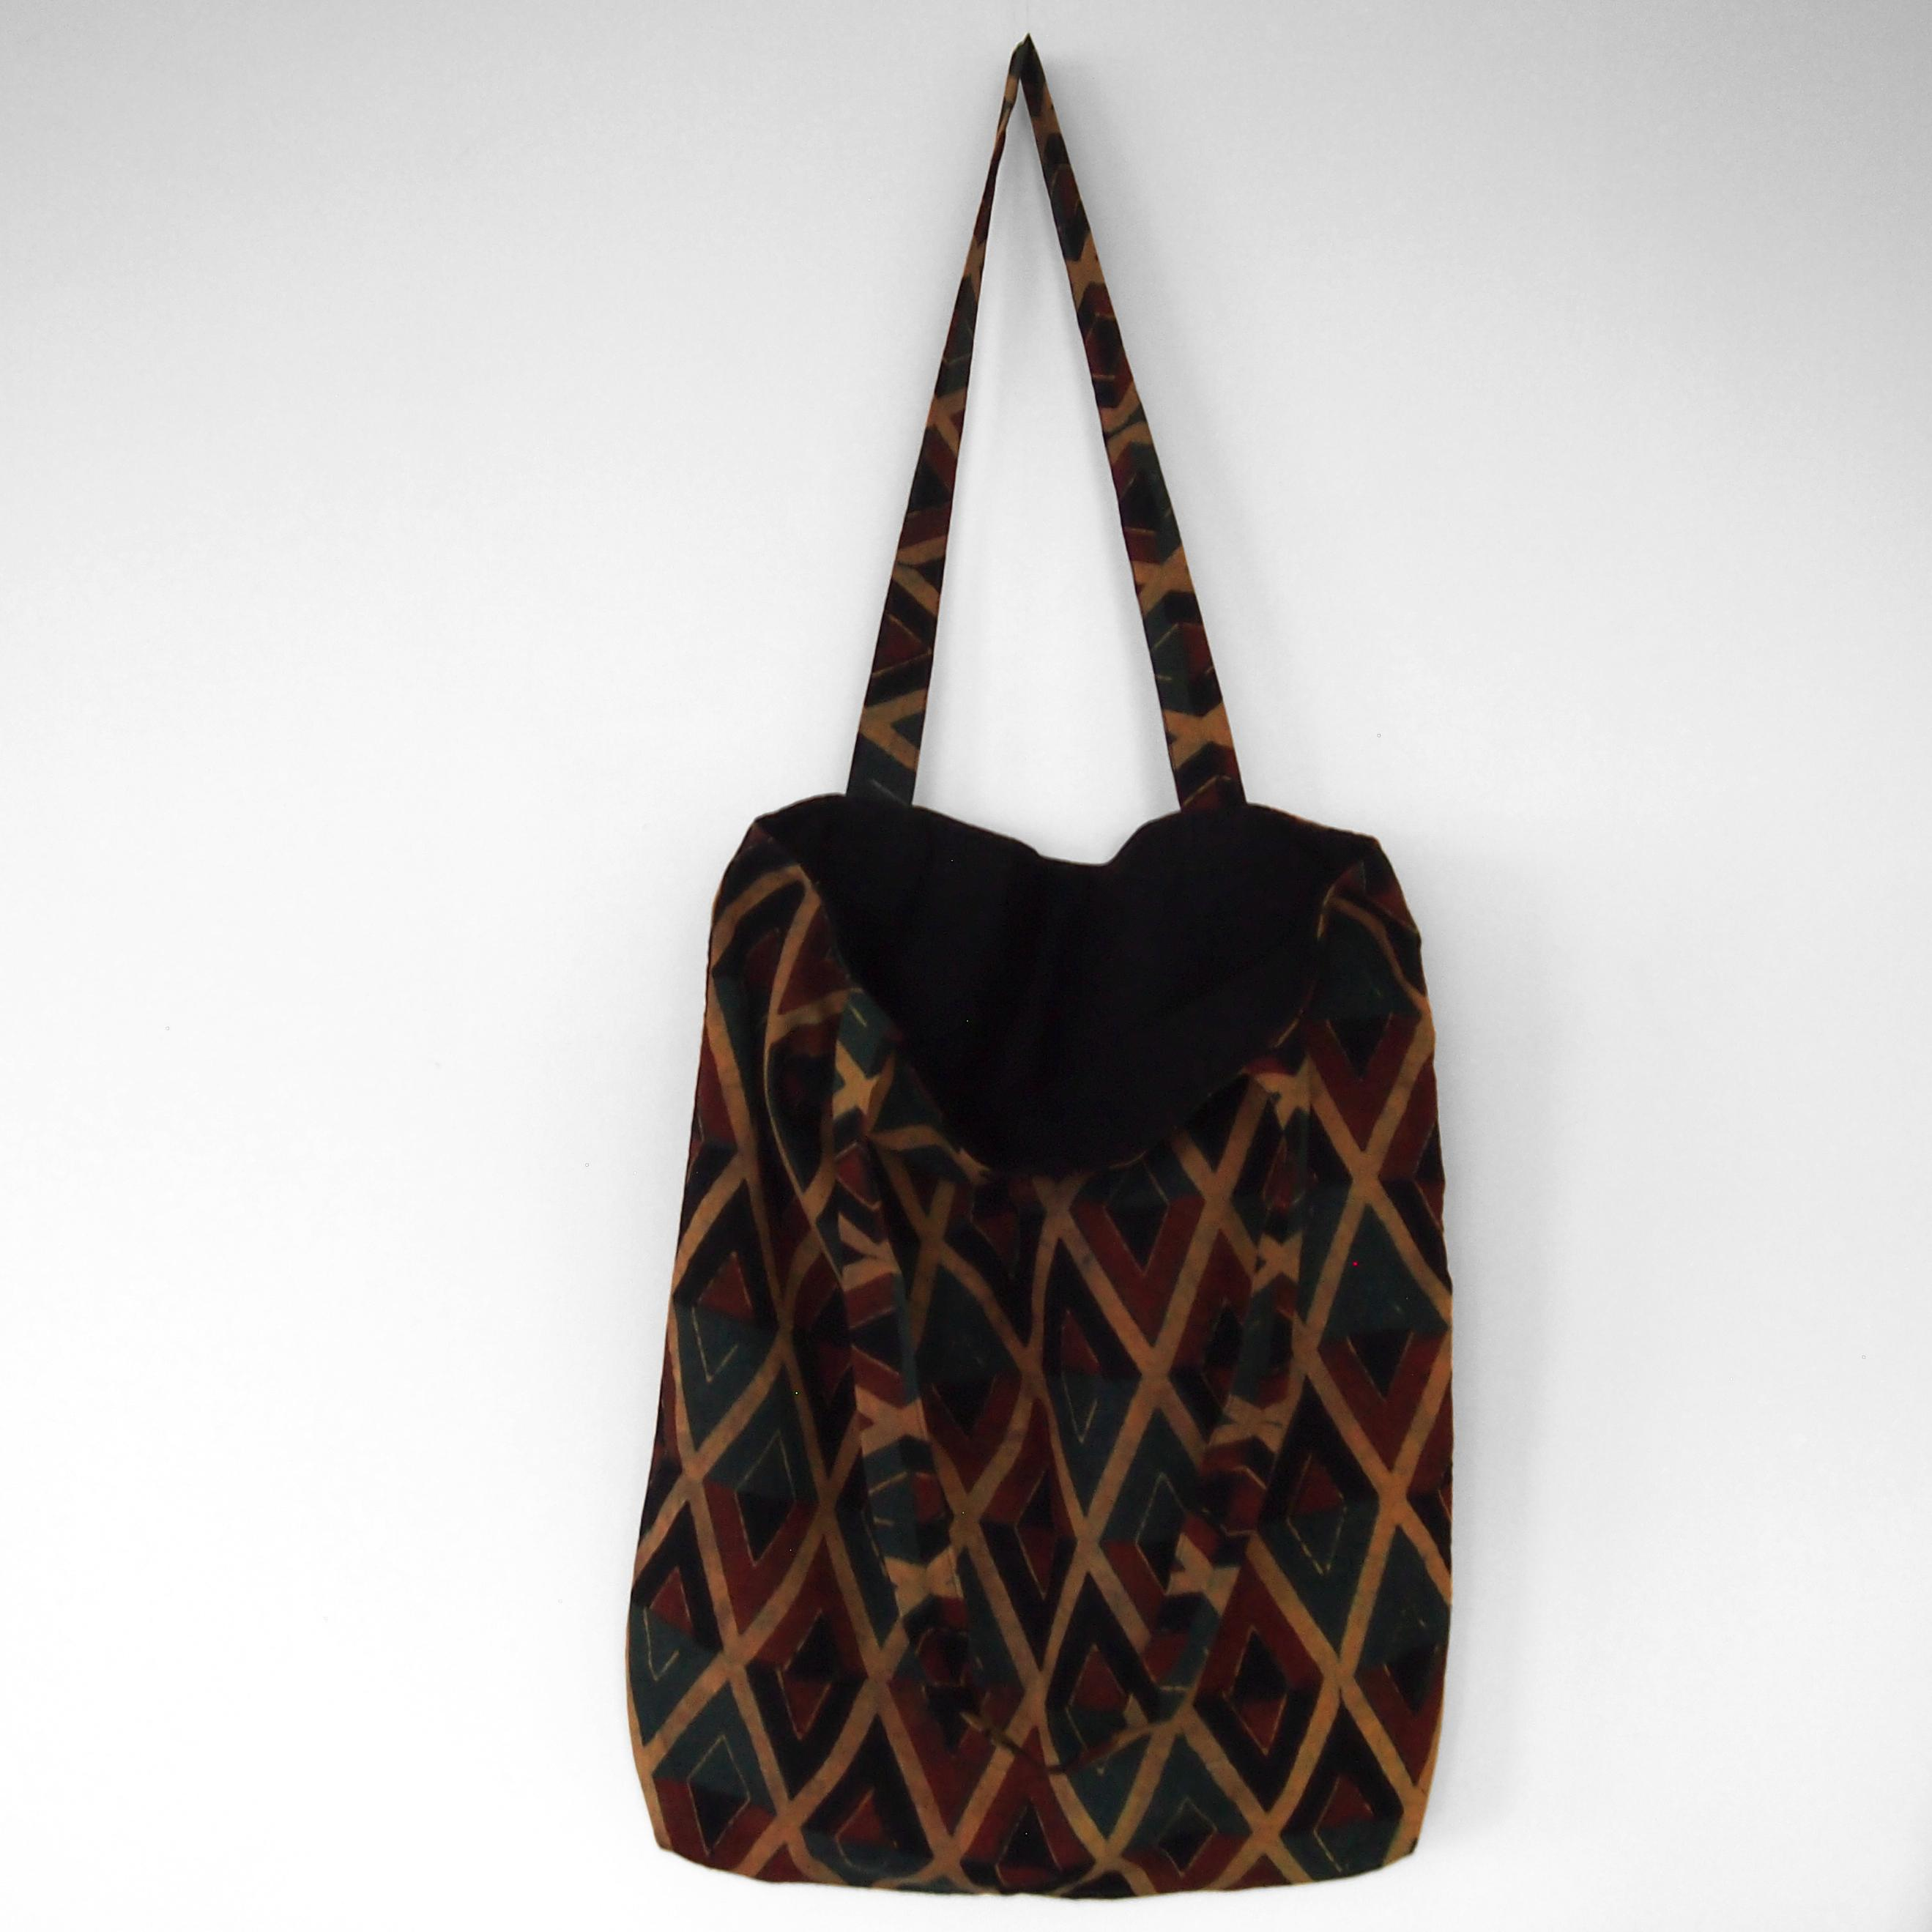 block printed cotton tote bag, natural dye, yellow, red green black diamond design, lined with black cotton, open